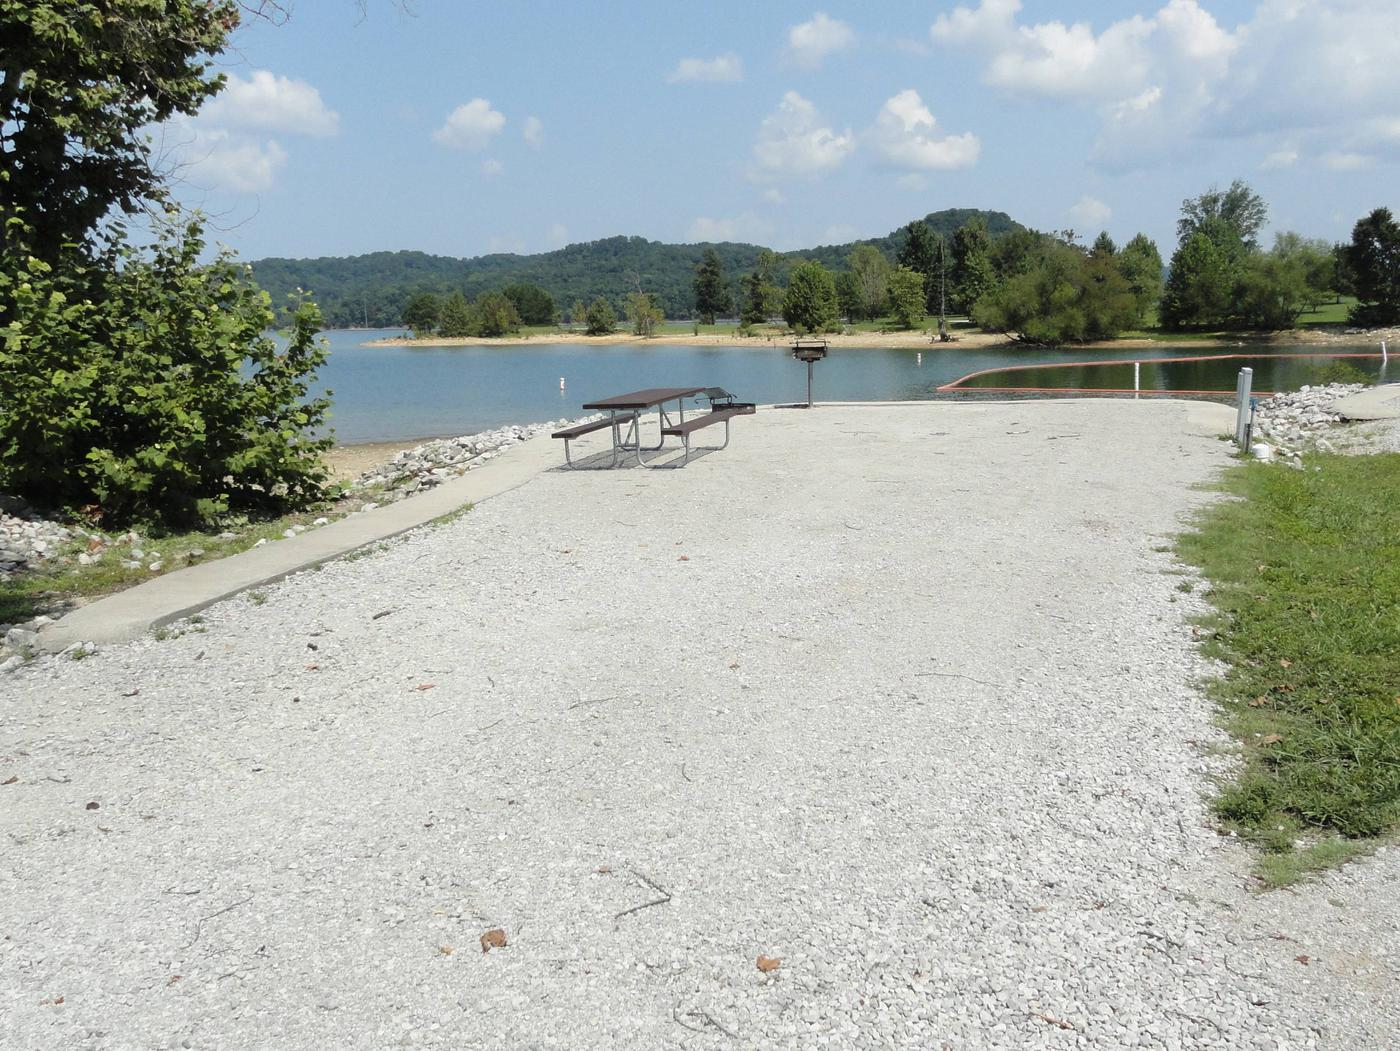 LILLYDALE CAMPGROUND SITE # 49